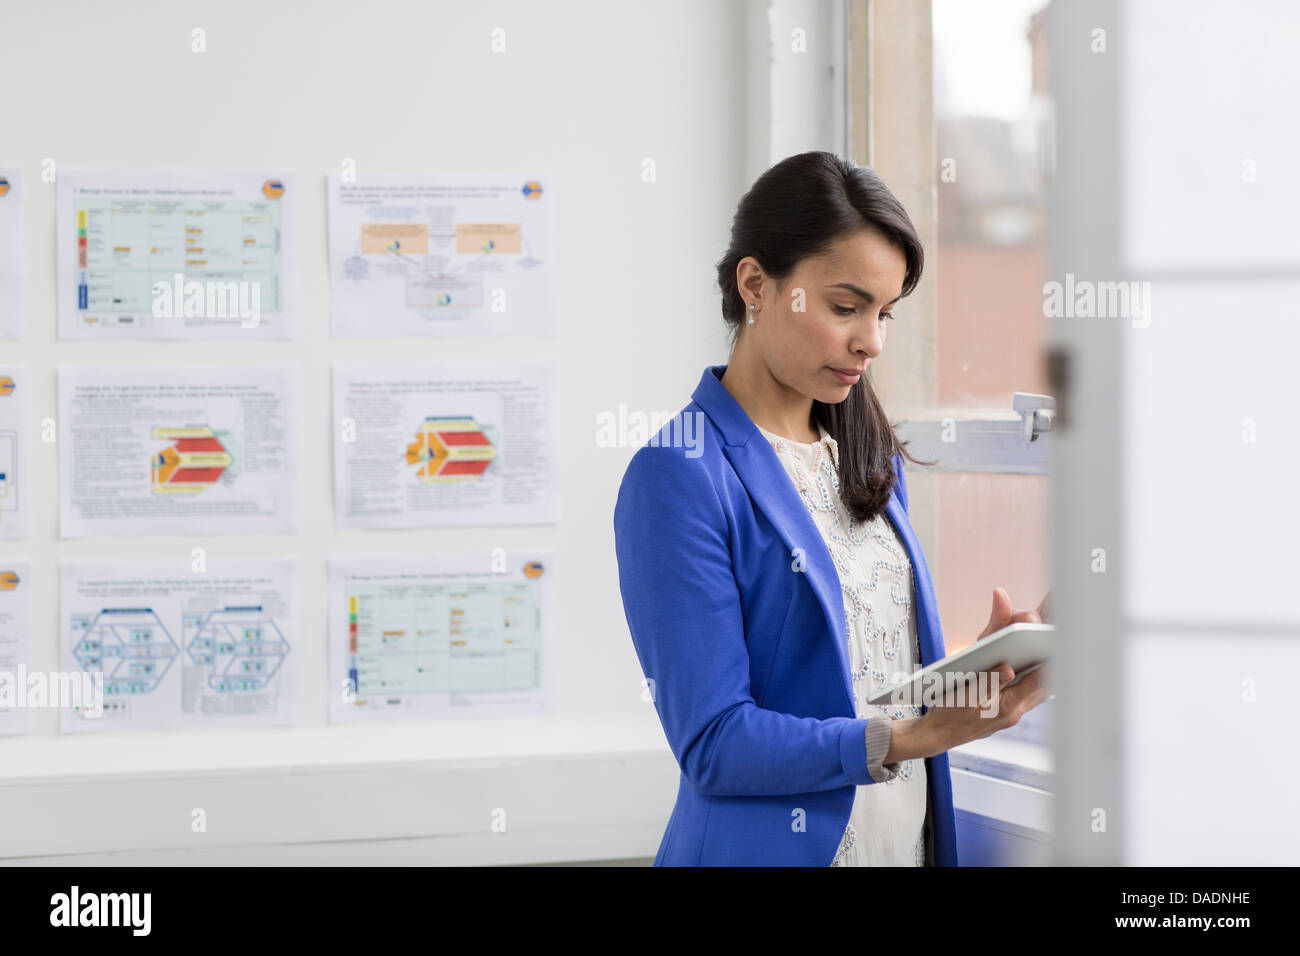 Businesswoman using digital tablet in office Banque D'Images